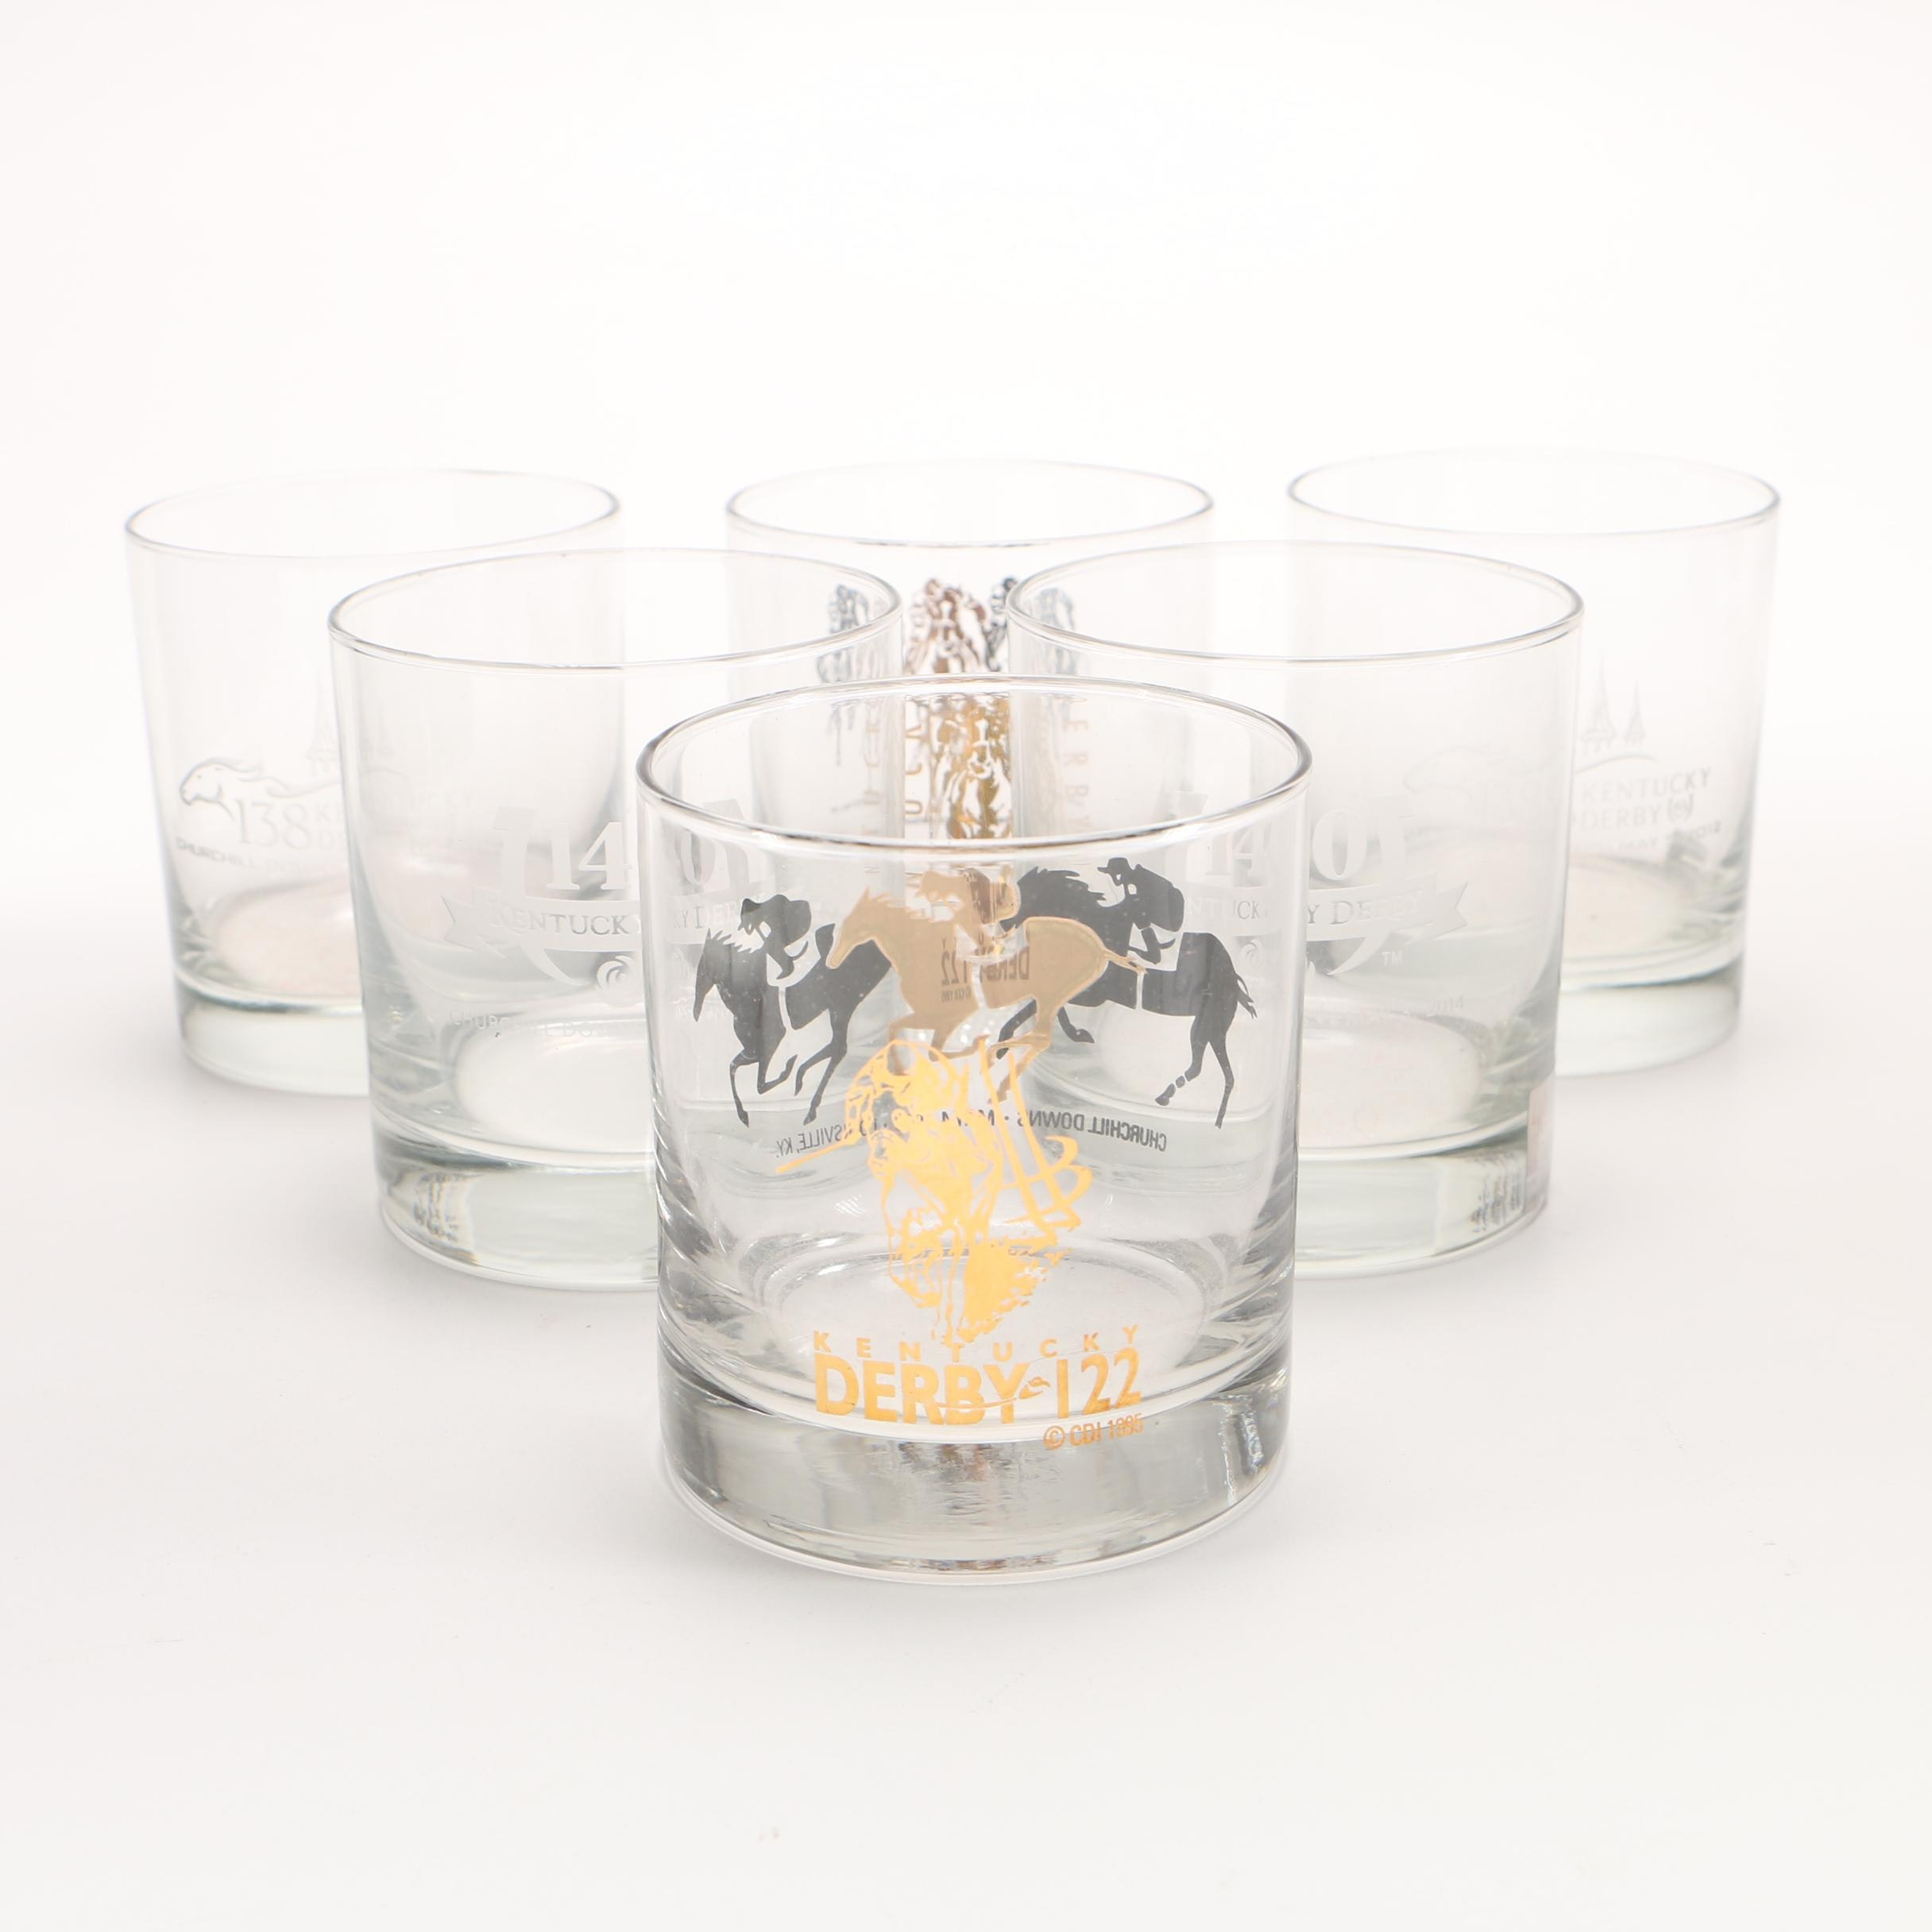 Kentucky Derby Old Fashioned Glasses